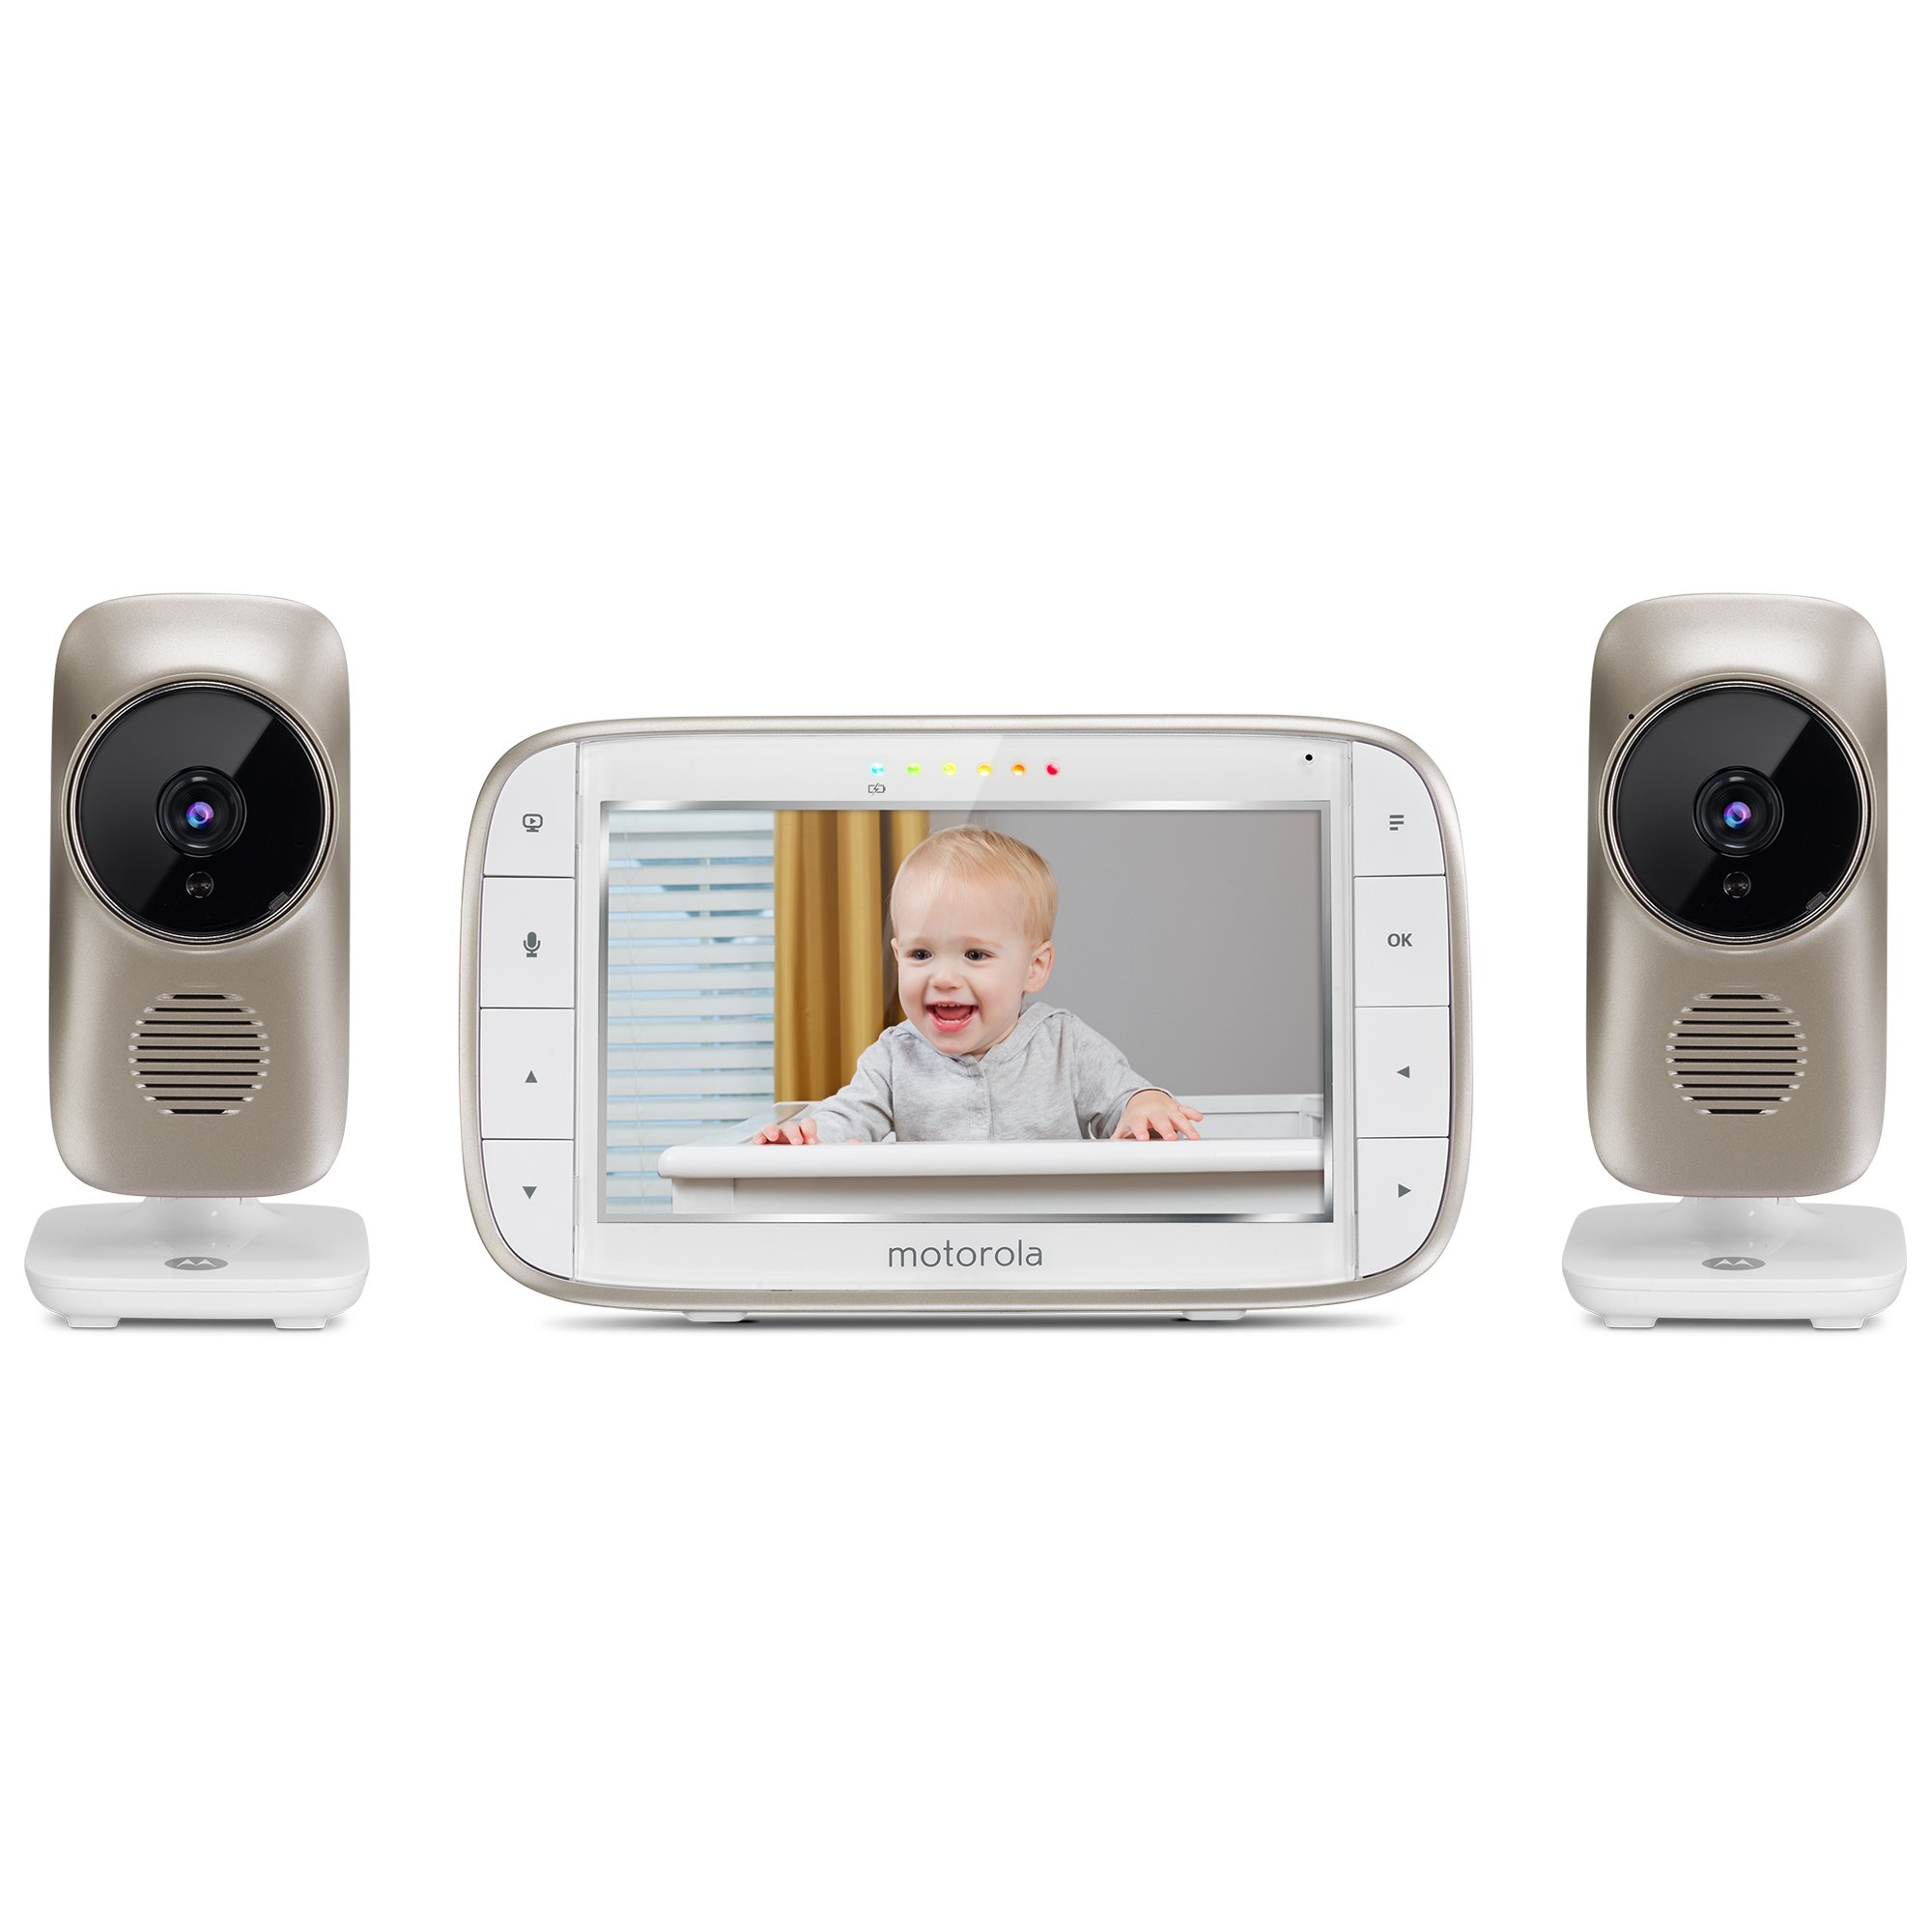 Motorola MBP845CONNECT-2 5'' Video Baby Monitor with Wi-Fi Viewing, 2 Cameras, Digital Zoom, Two-Way Audio, and Room Temperature Display by Motorola Baby (Image #1)